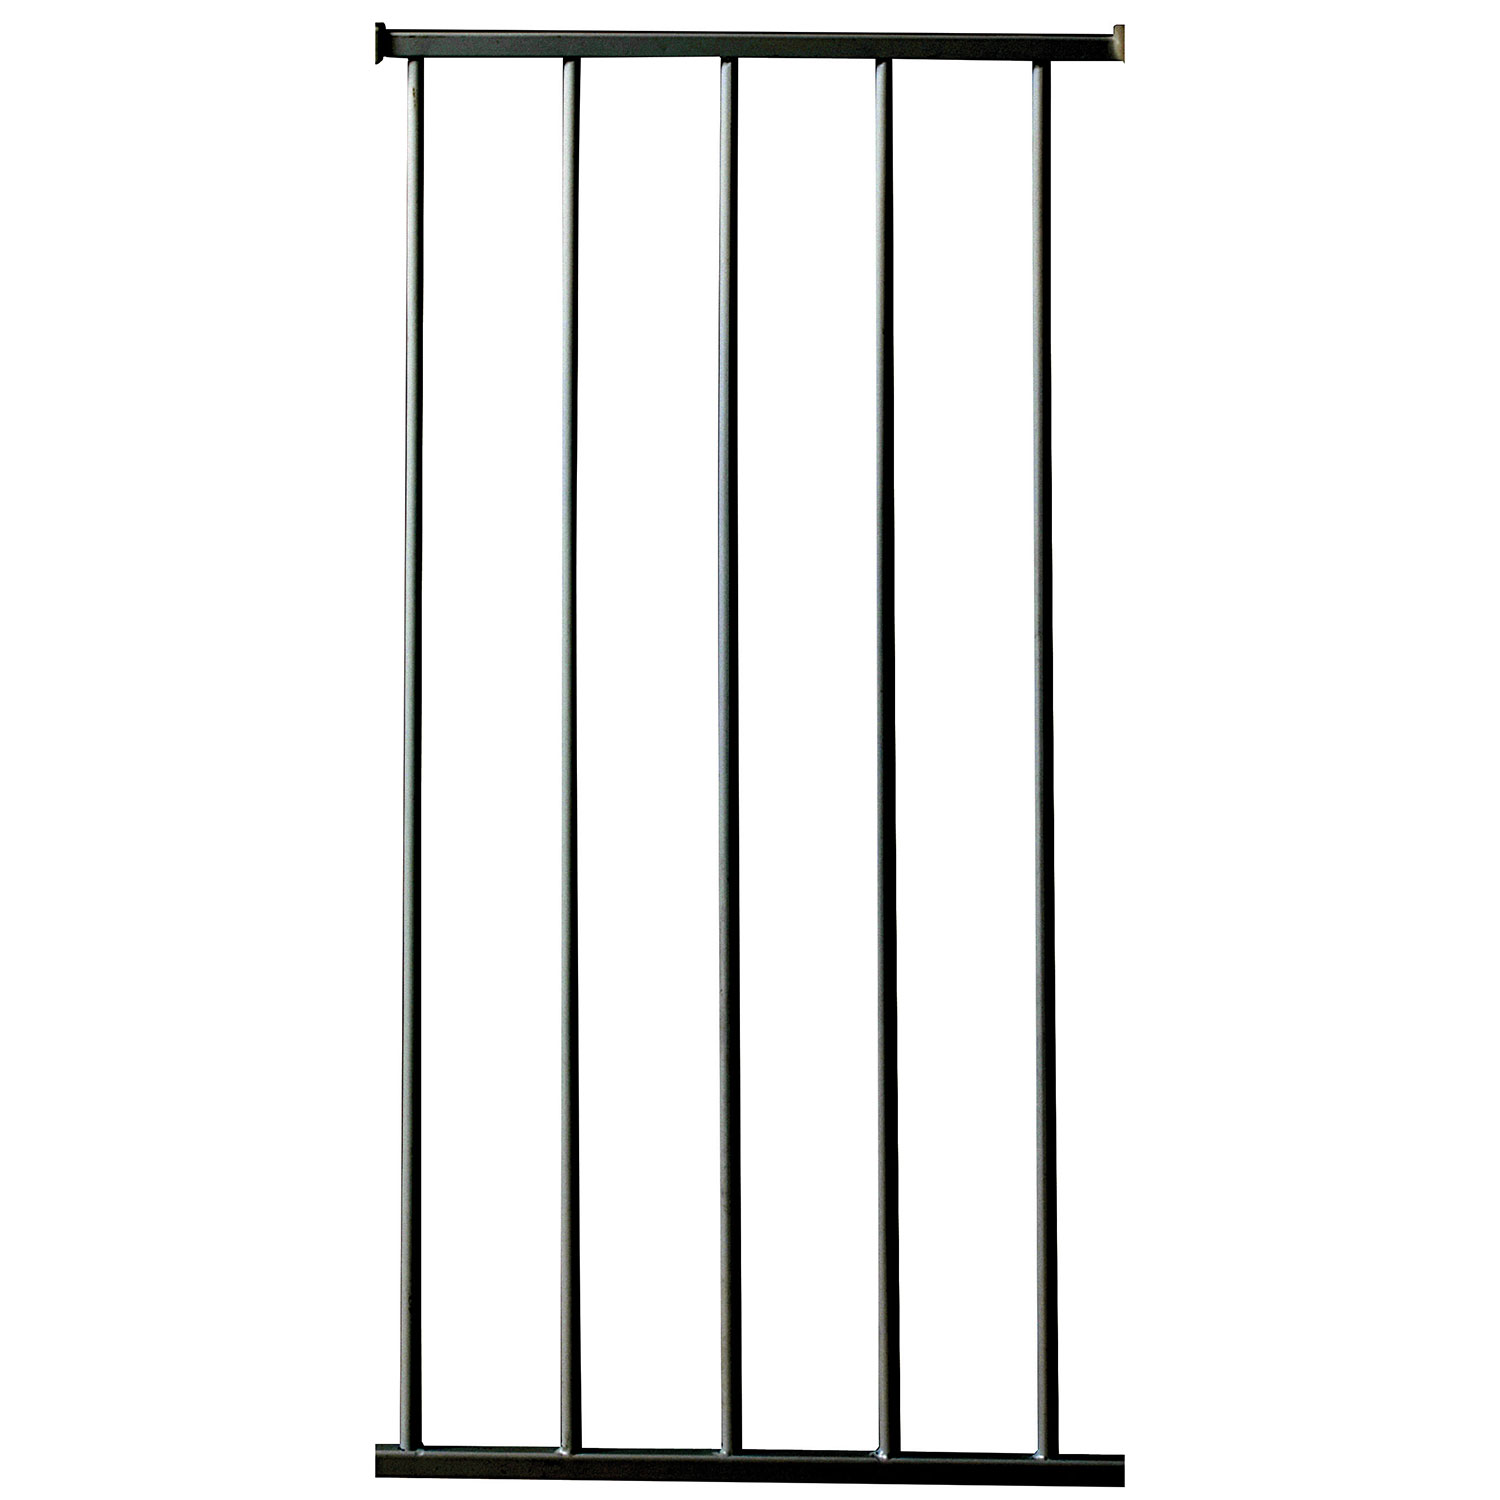 Kidco Safety Gate Extension Kit For G1001 Gateway G4111 Black